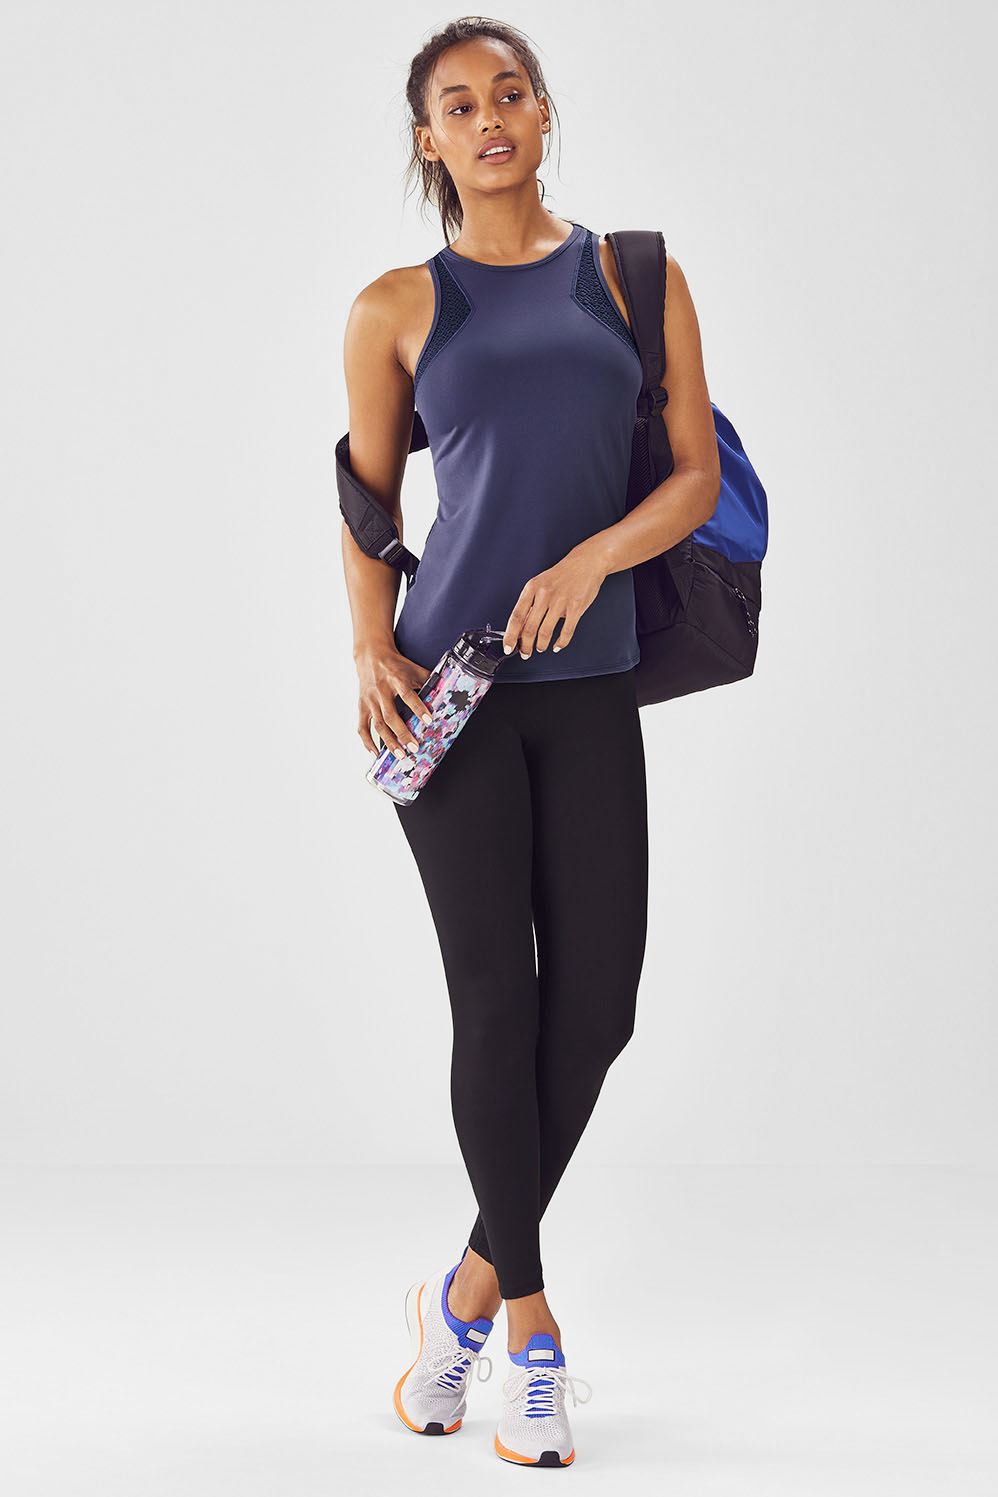 Fabletics Nisha Womens Blue/Black One Size Fits Most Outfit